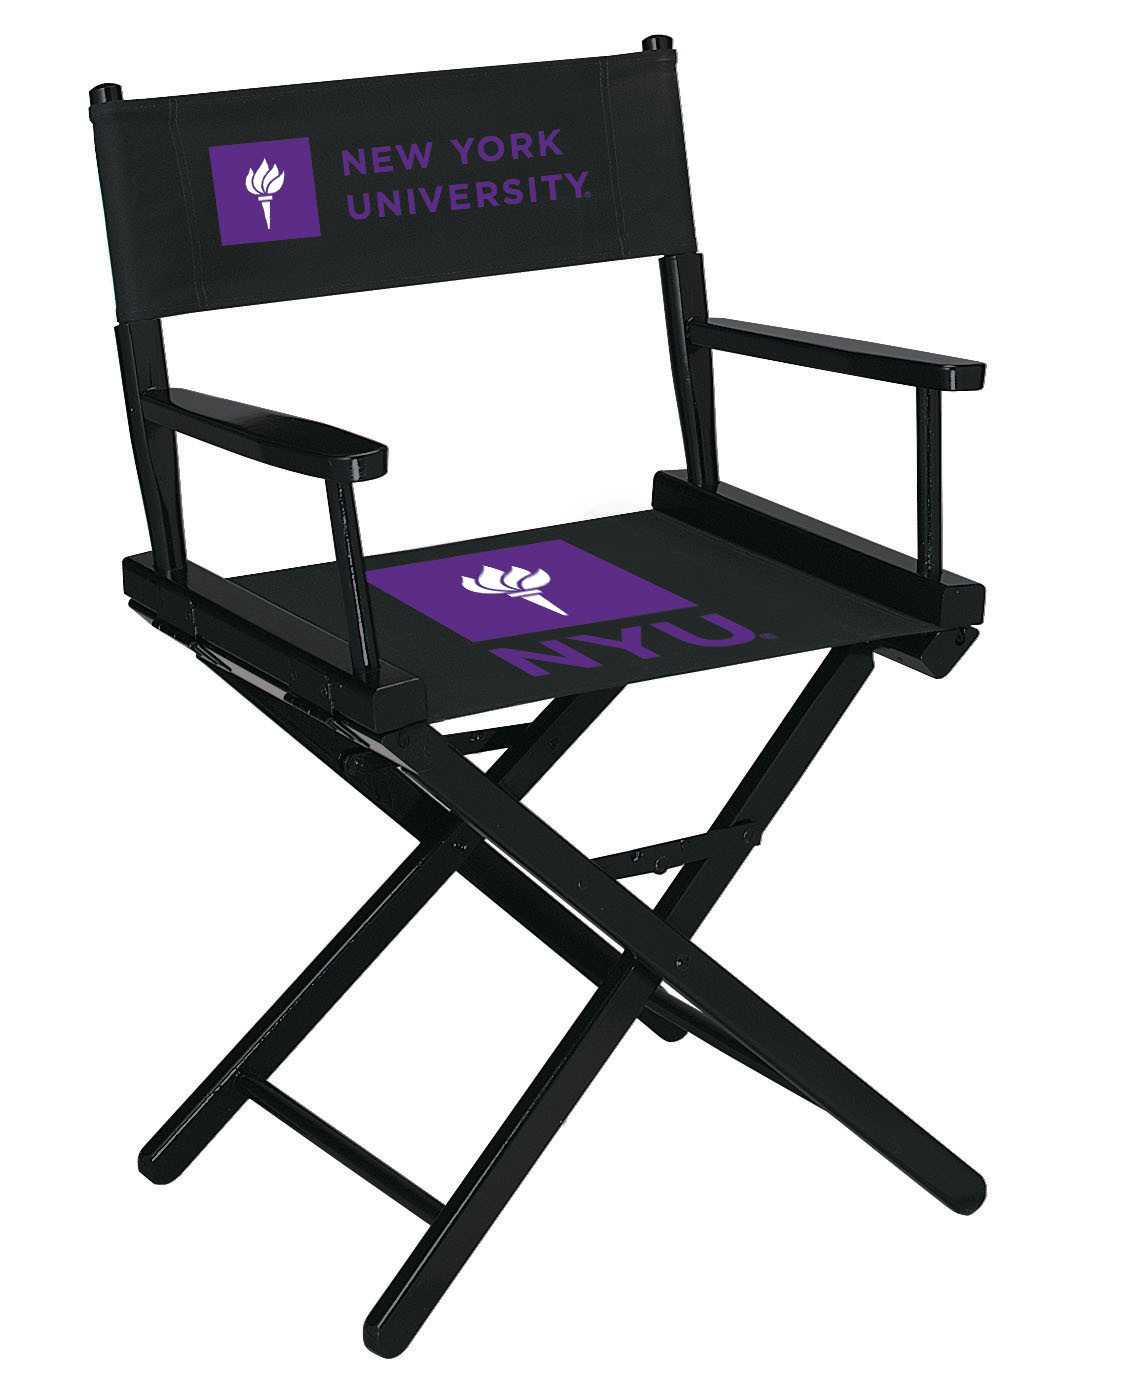 NEW YORK UNIVERSITY DIRECTORS CHAIR-TABLE HEIGHT